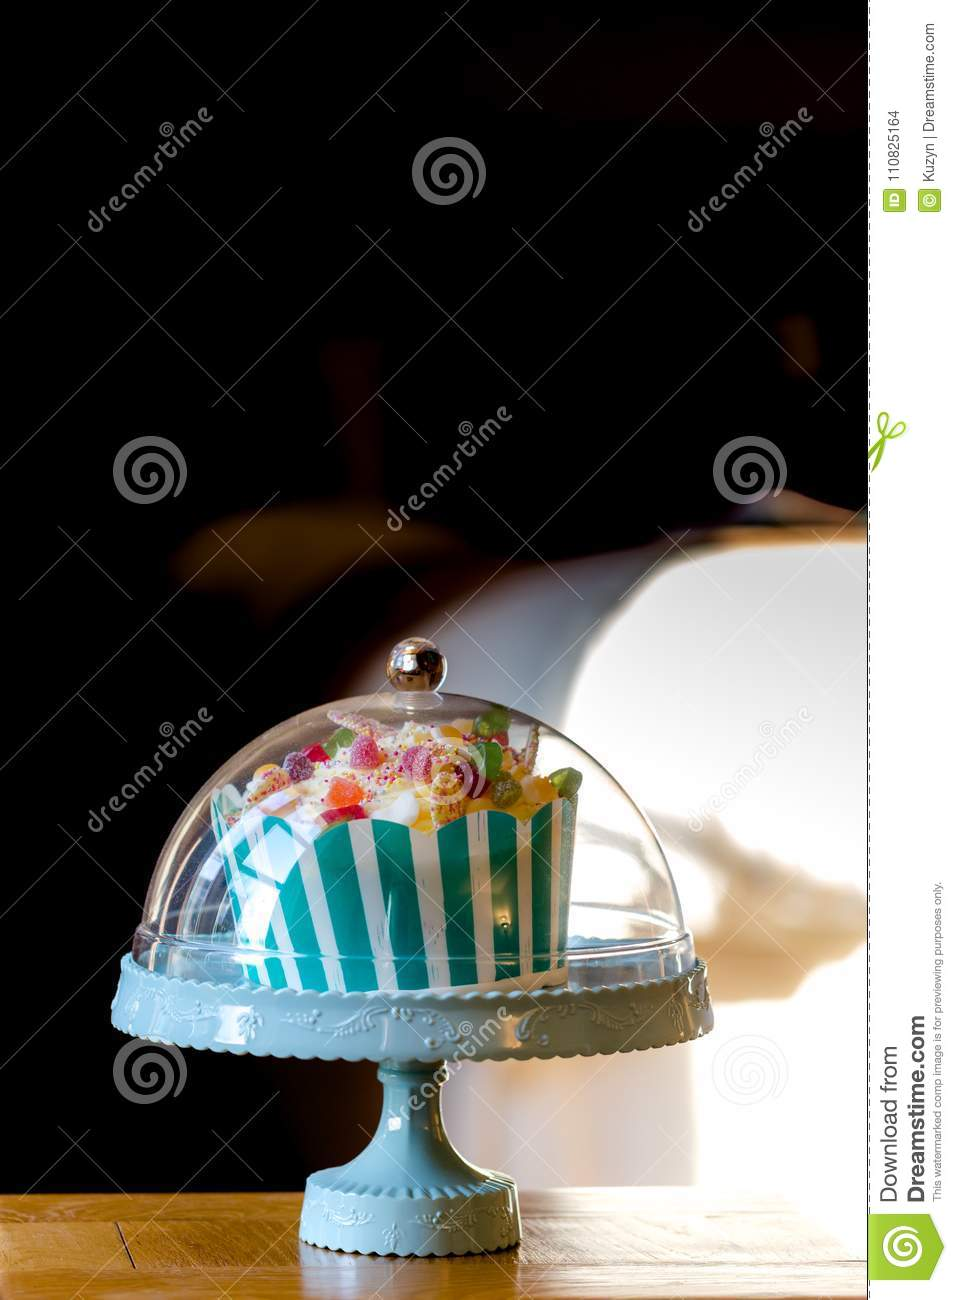 Small Traditional Birthday Cake In Vintage Style Stock Photo Image